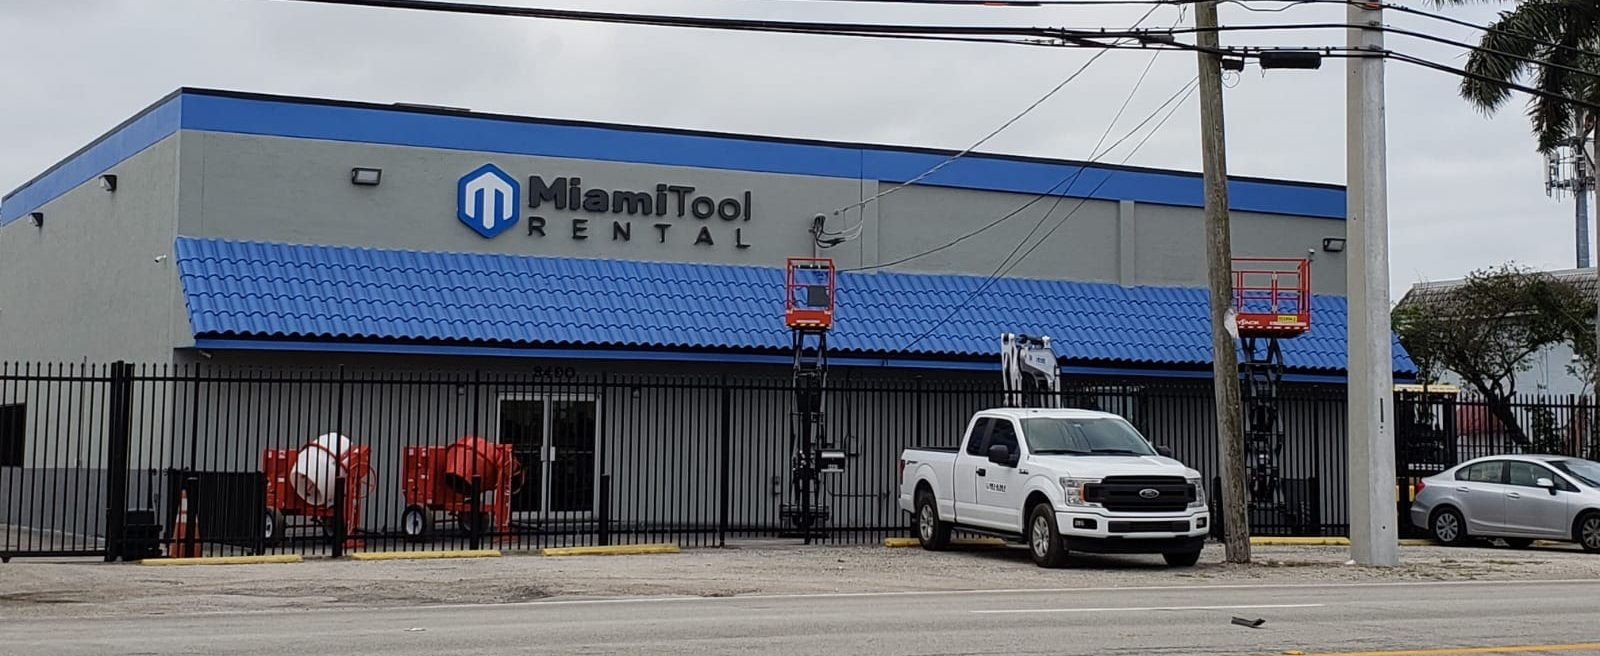 Miami Tool Rental 58th St